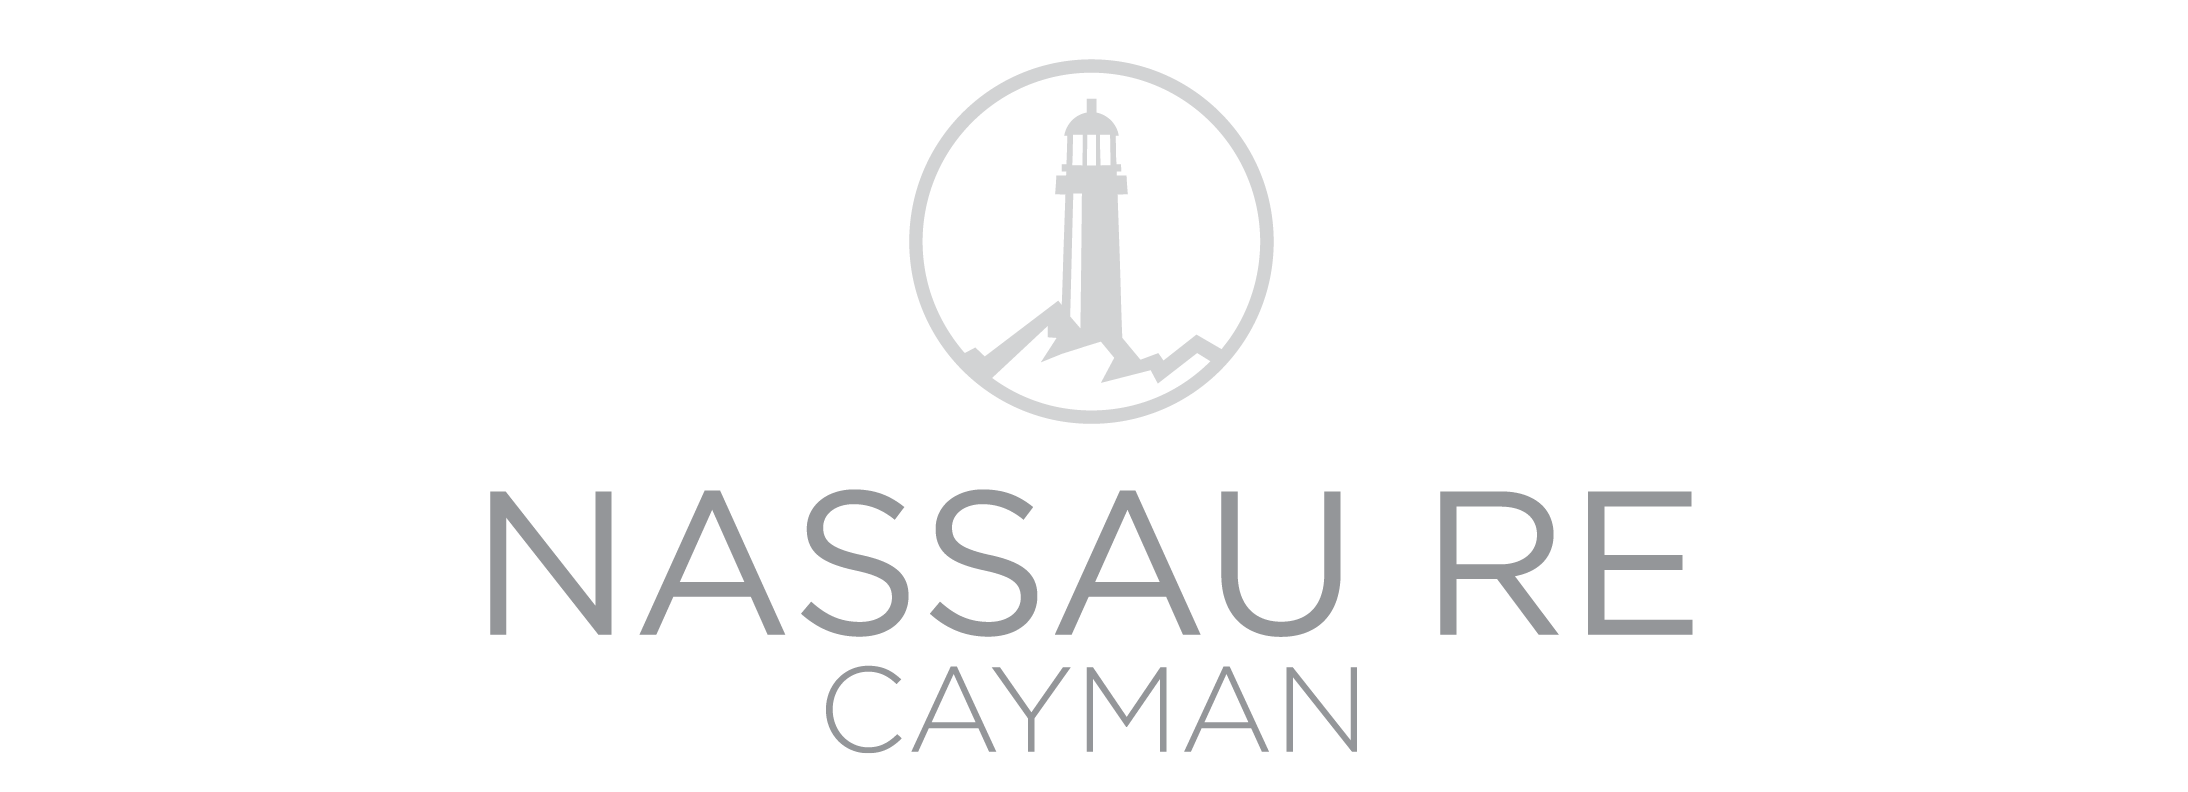 Nassau Re Cayman